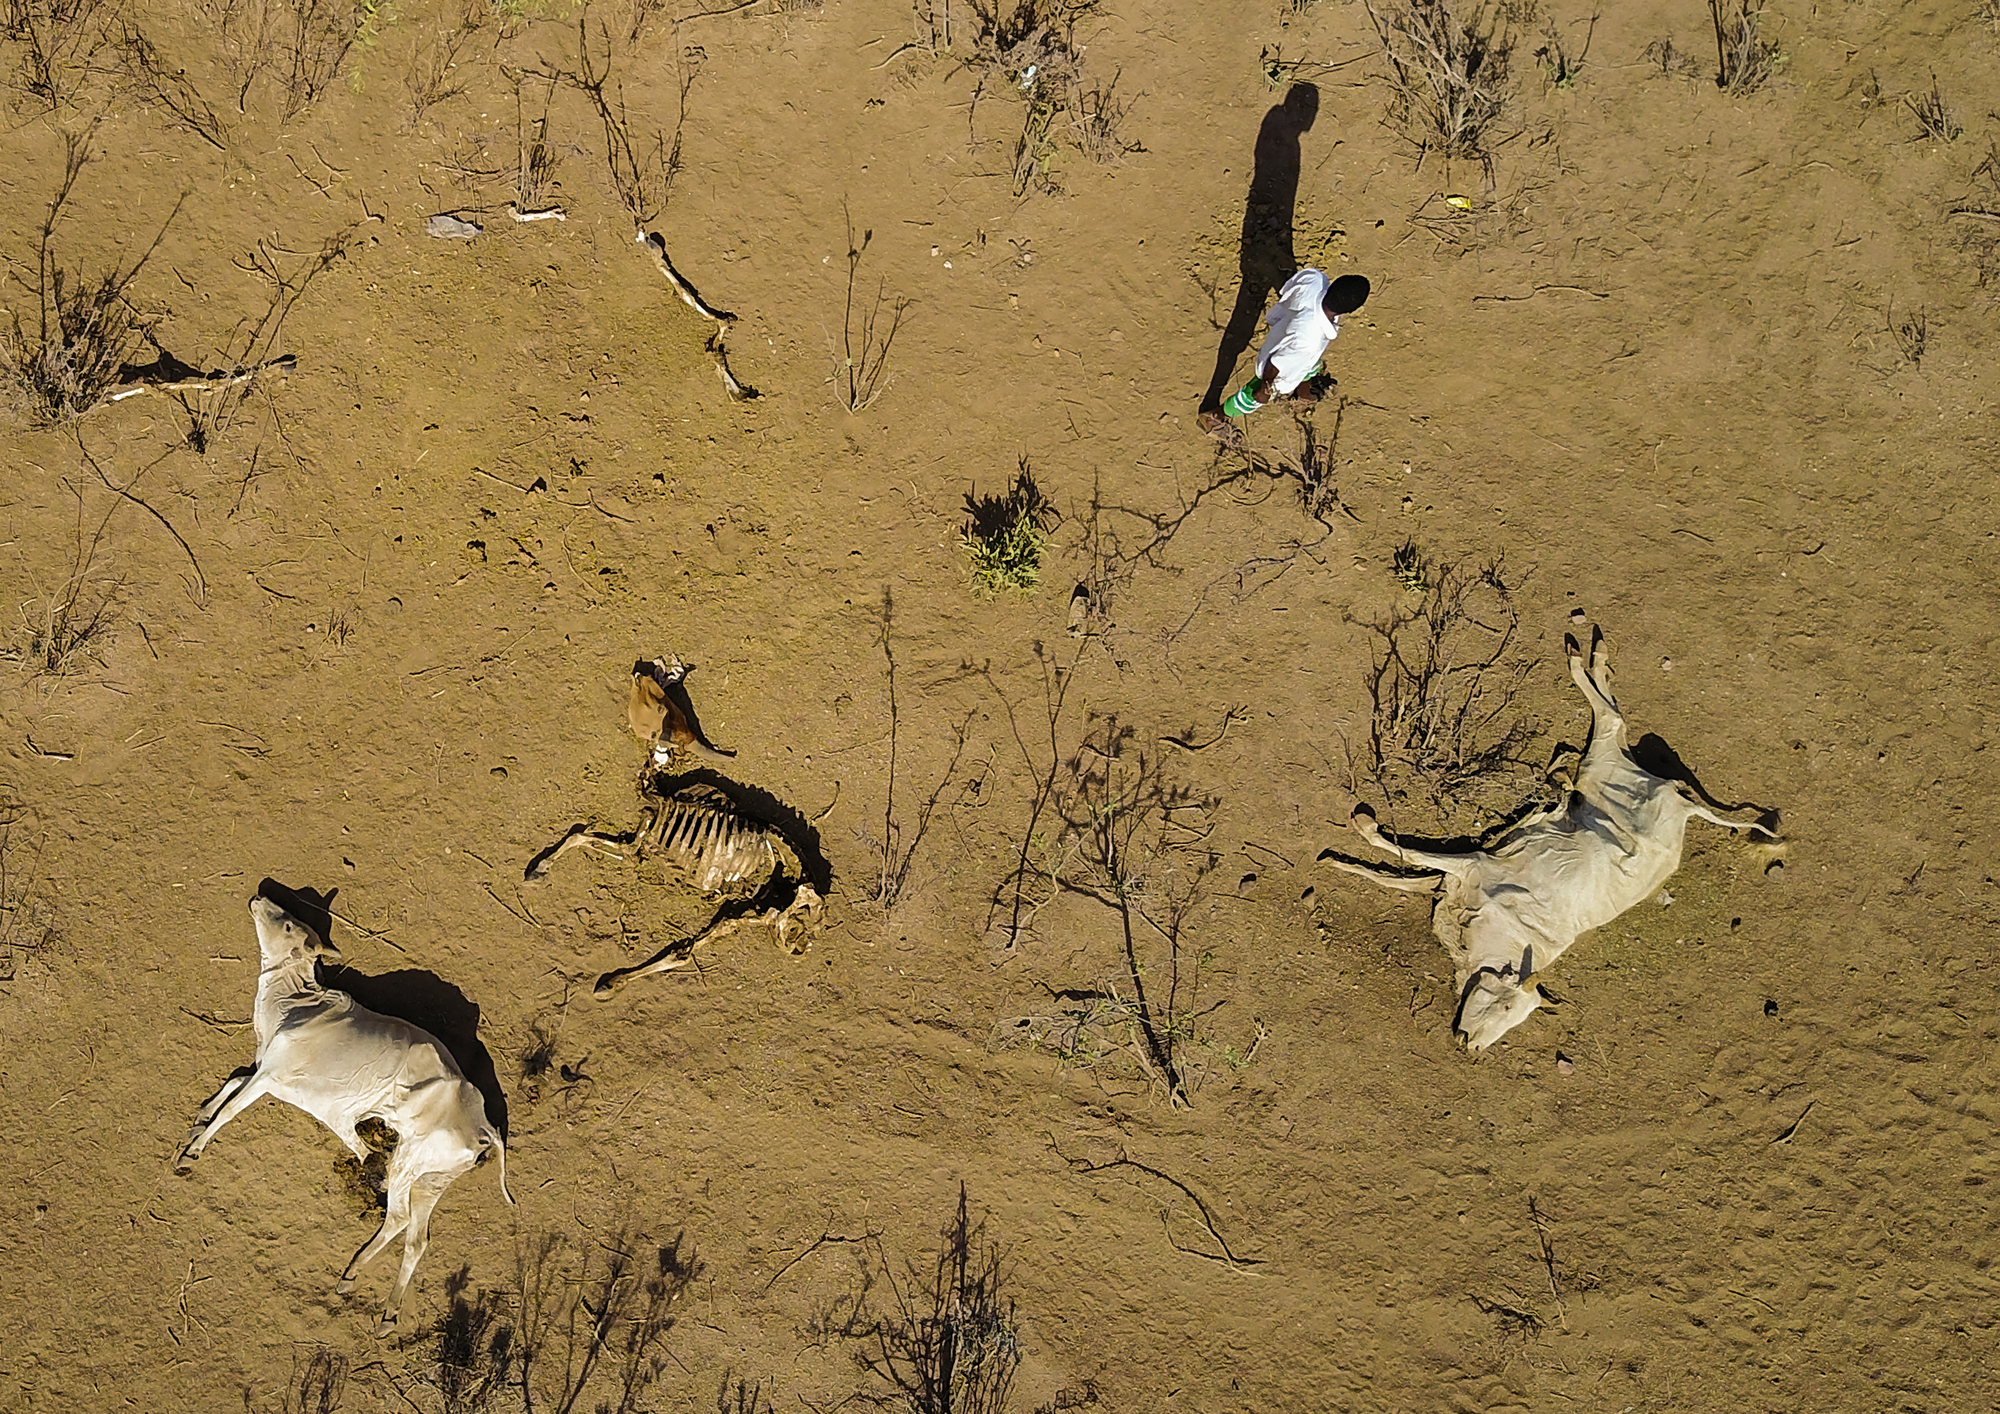 The Devastating Drought in the Horn of Africa